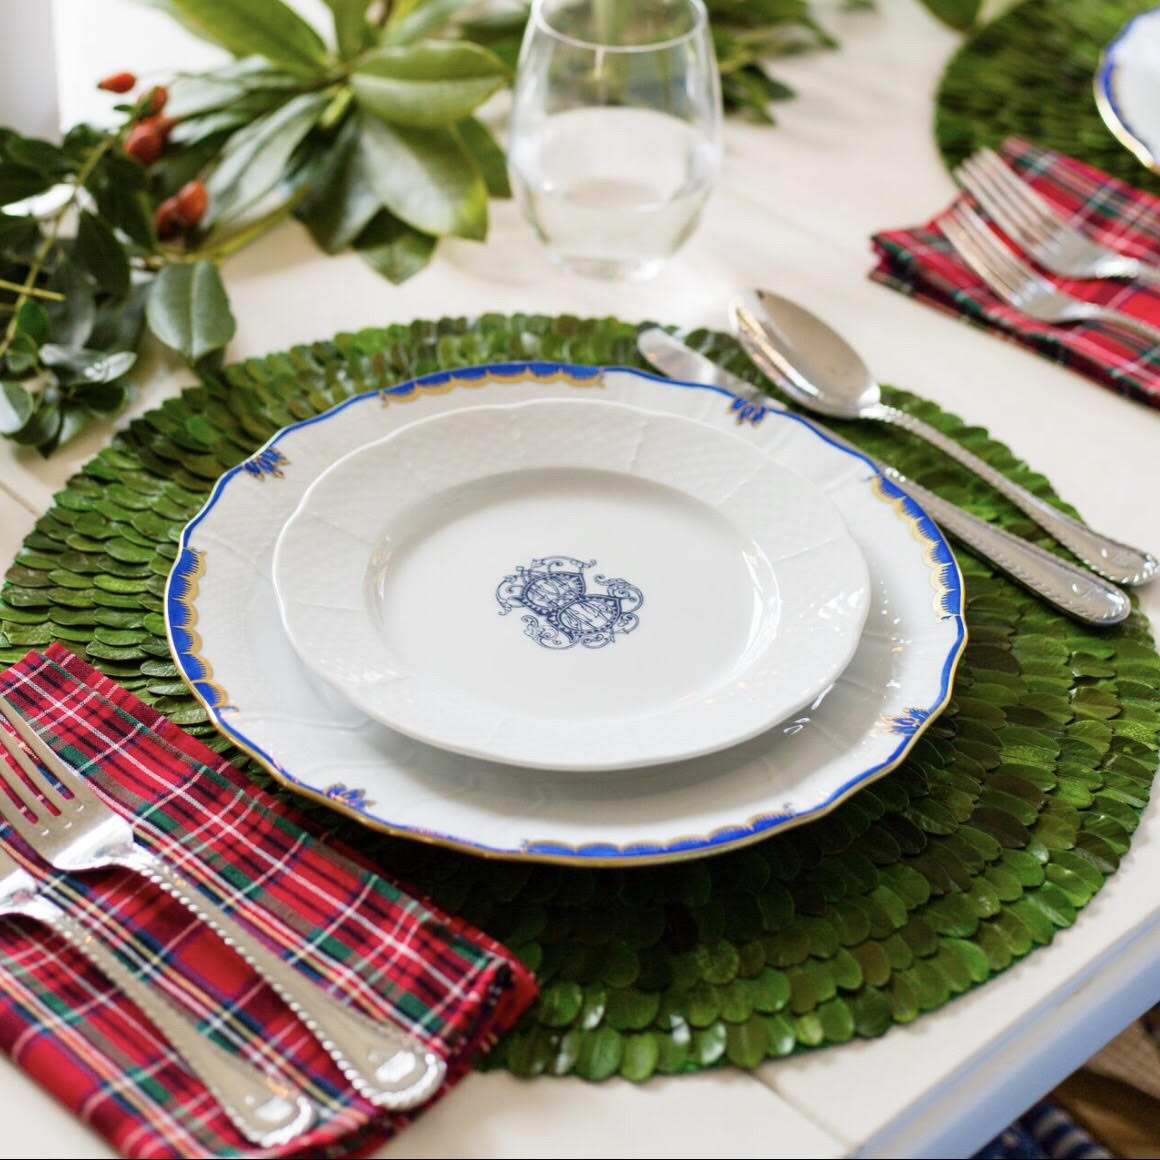 Boxwood placemat with Sasha Nicholas monogrammed and Herend china tablescape for wedding registry